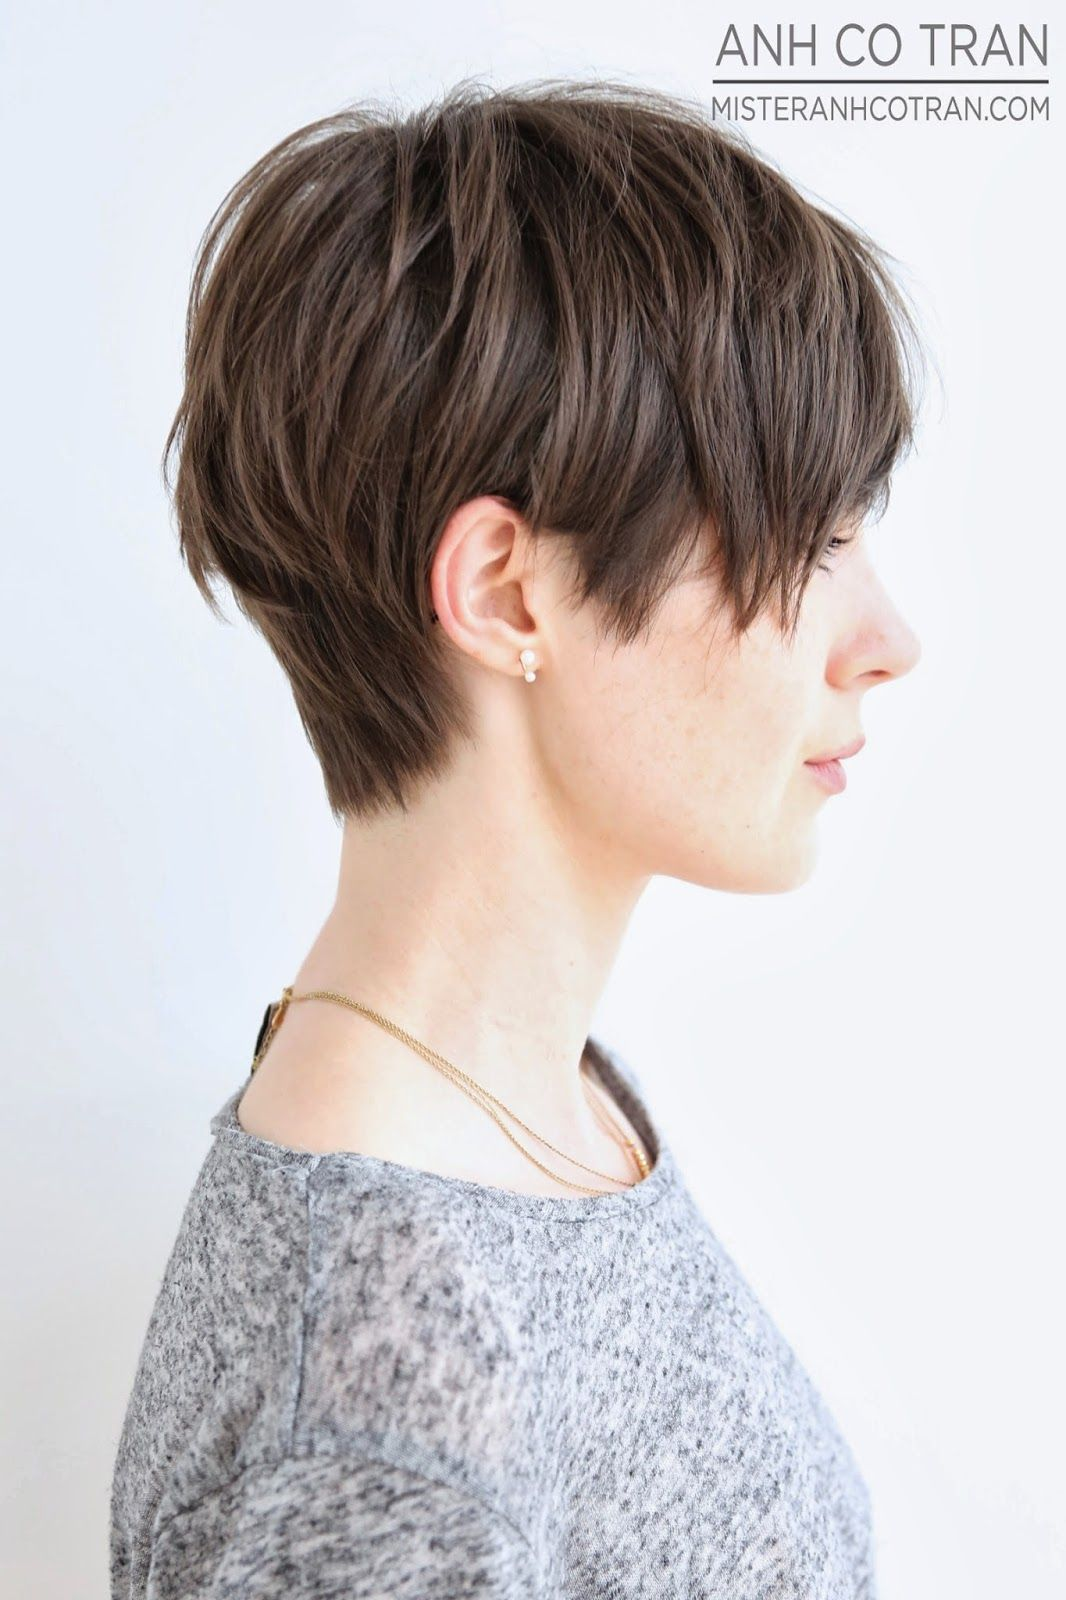 Rock hairstyle boy i could never rock short hair but i love this cut  but can i look